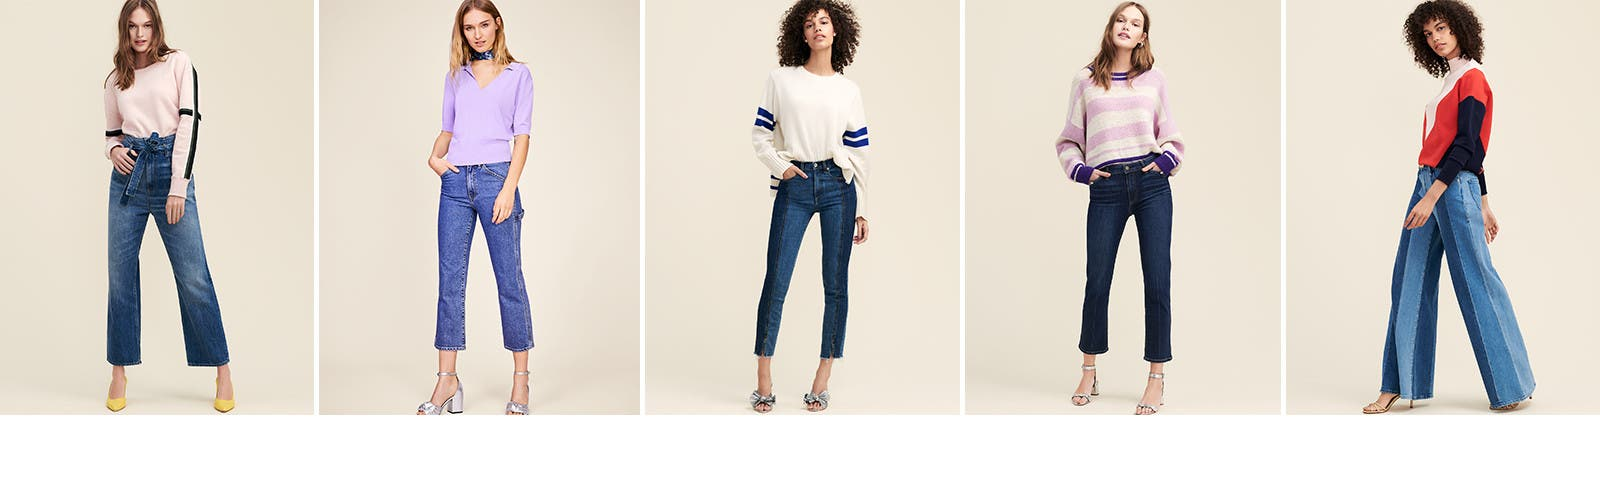 Women's Jeans & Denim